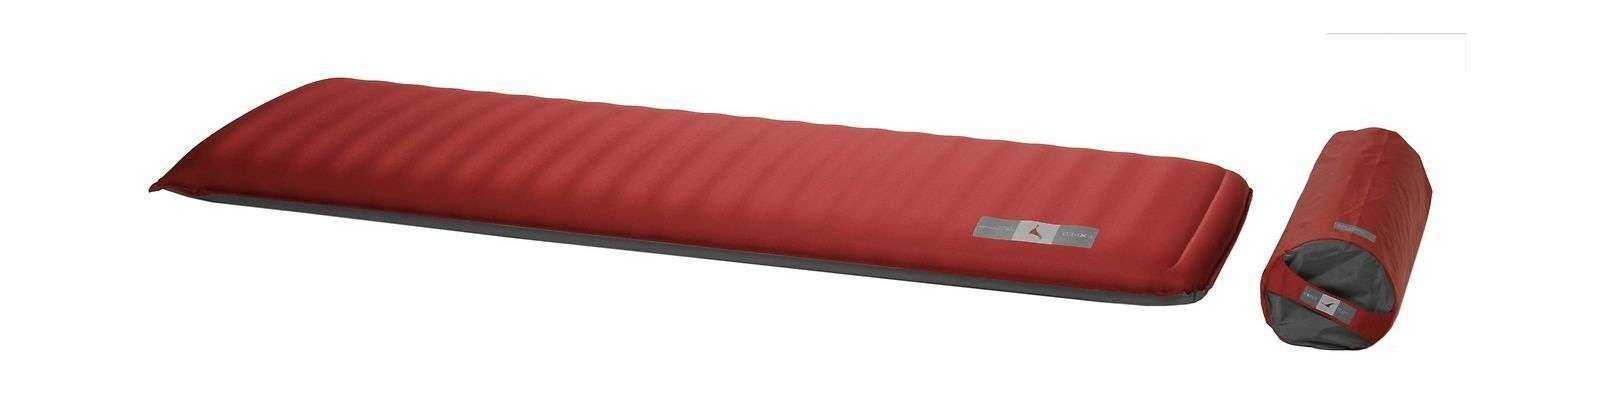 Exped SIM Comfort 10 LW LW LW Sleeping Pad, lunghe Wide 84b13a